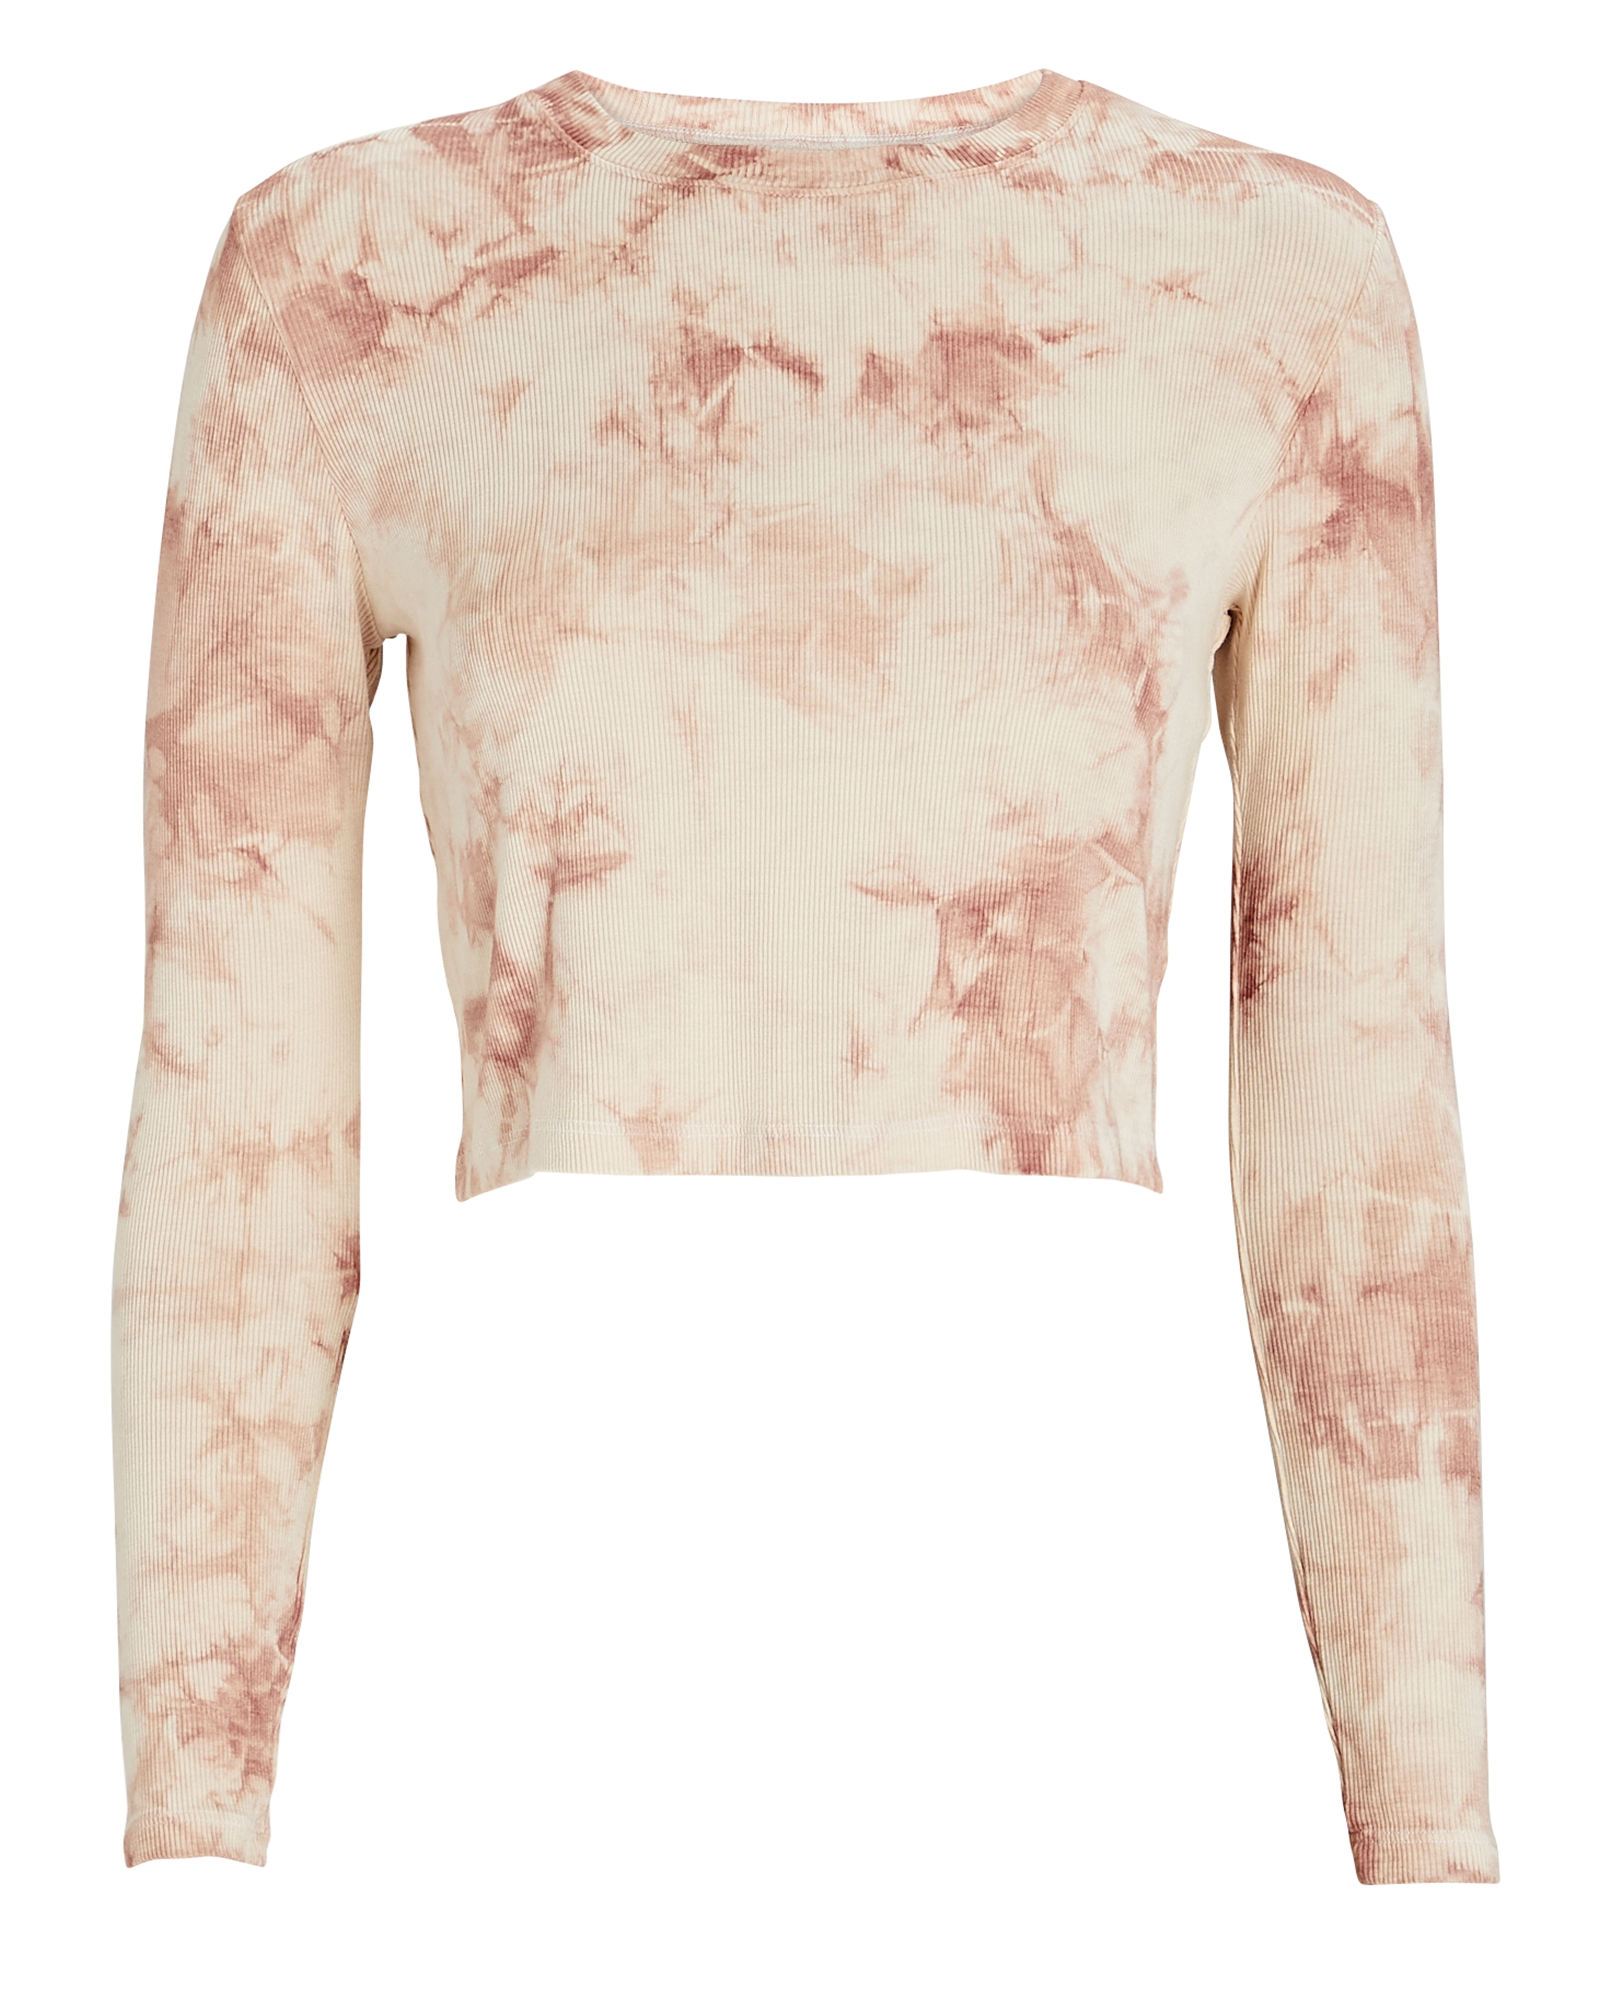 Year Of Ours Tops YEAR OF OURS LONG SLEEVE TIE-DYE CROP TOP